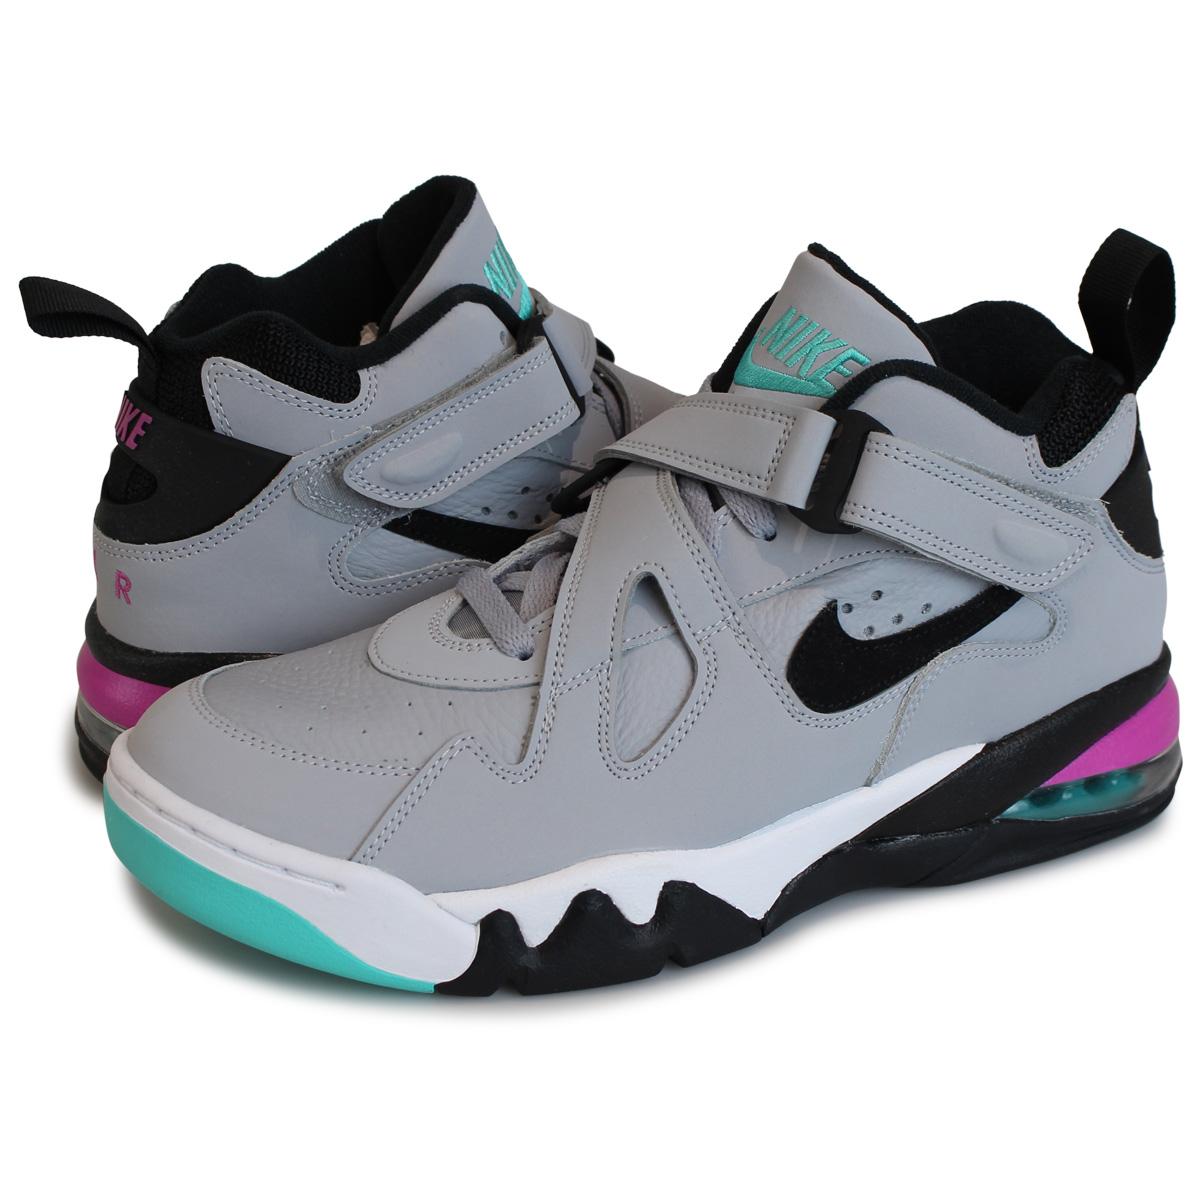 Nike NIKE air force max sneakers men AIR FORCE MAX CB gray AJ7922 003 [the 210 additional arrival]